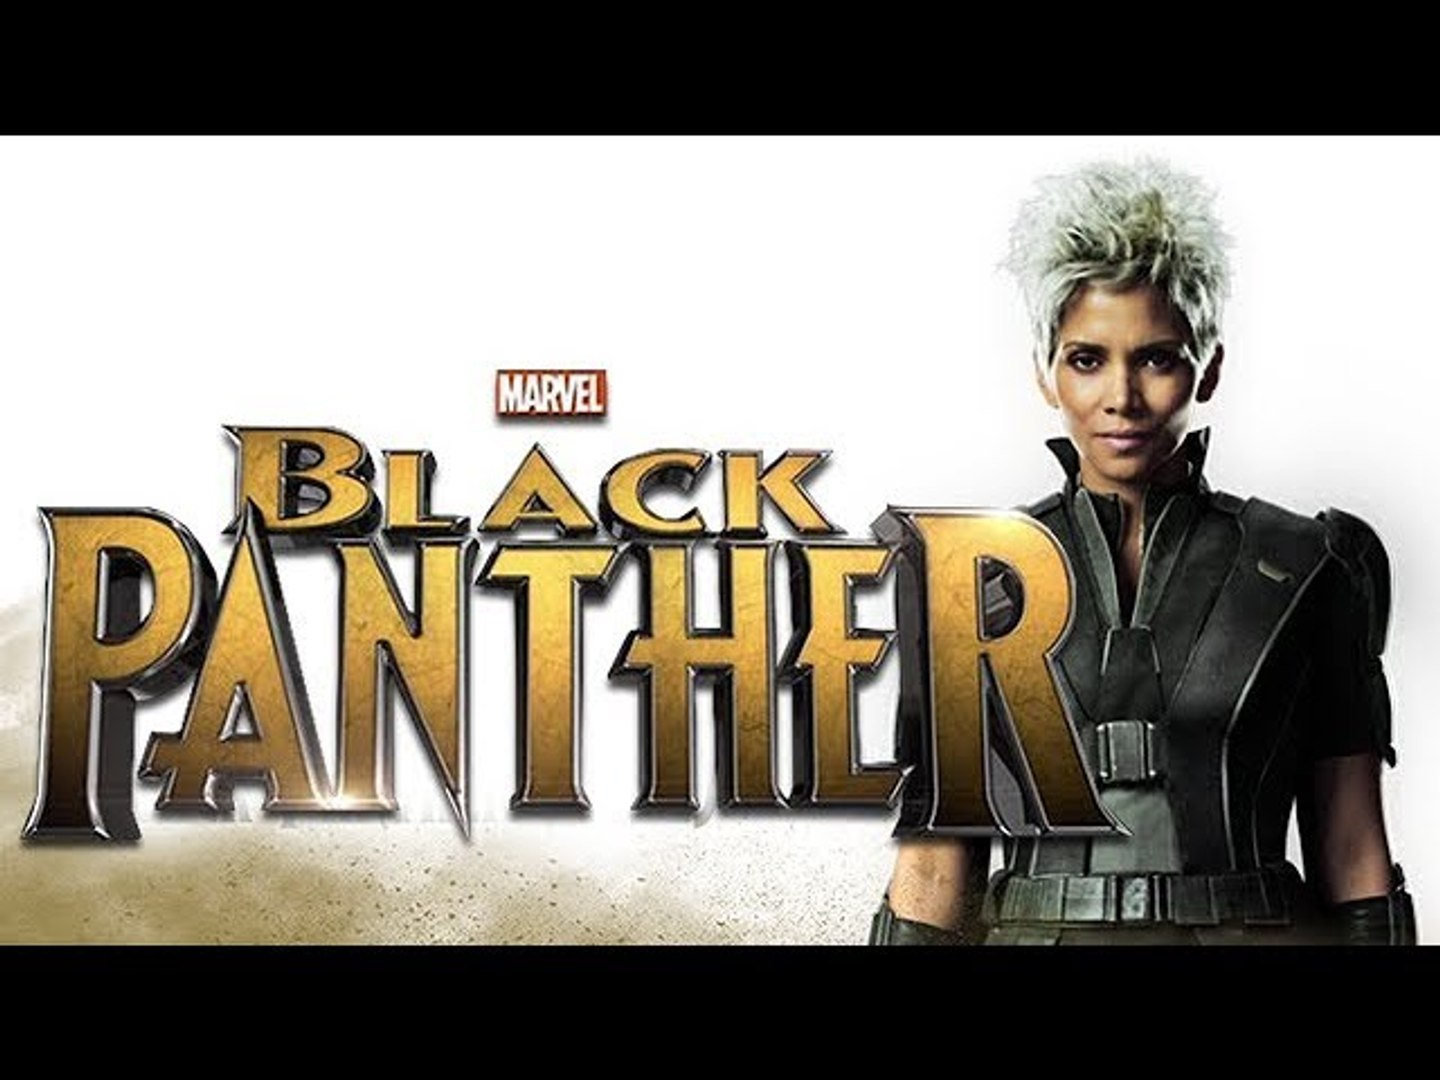 STORM -Black Panther Style- 4K - Legend Has It - Run the Jewels